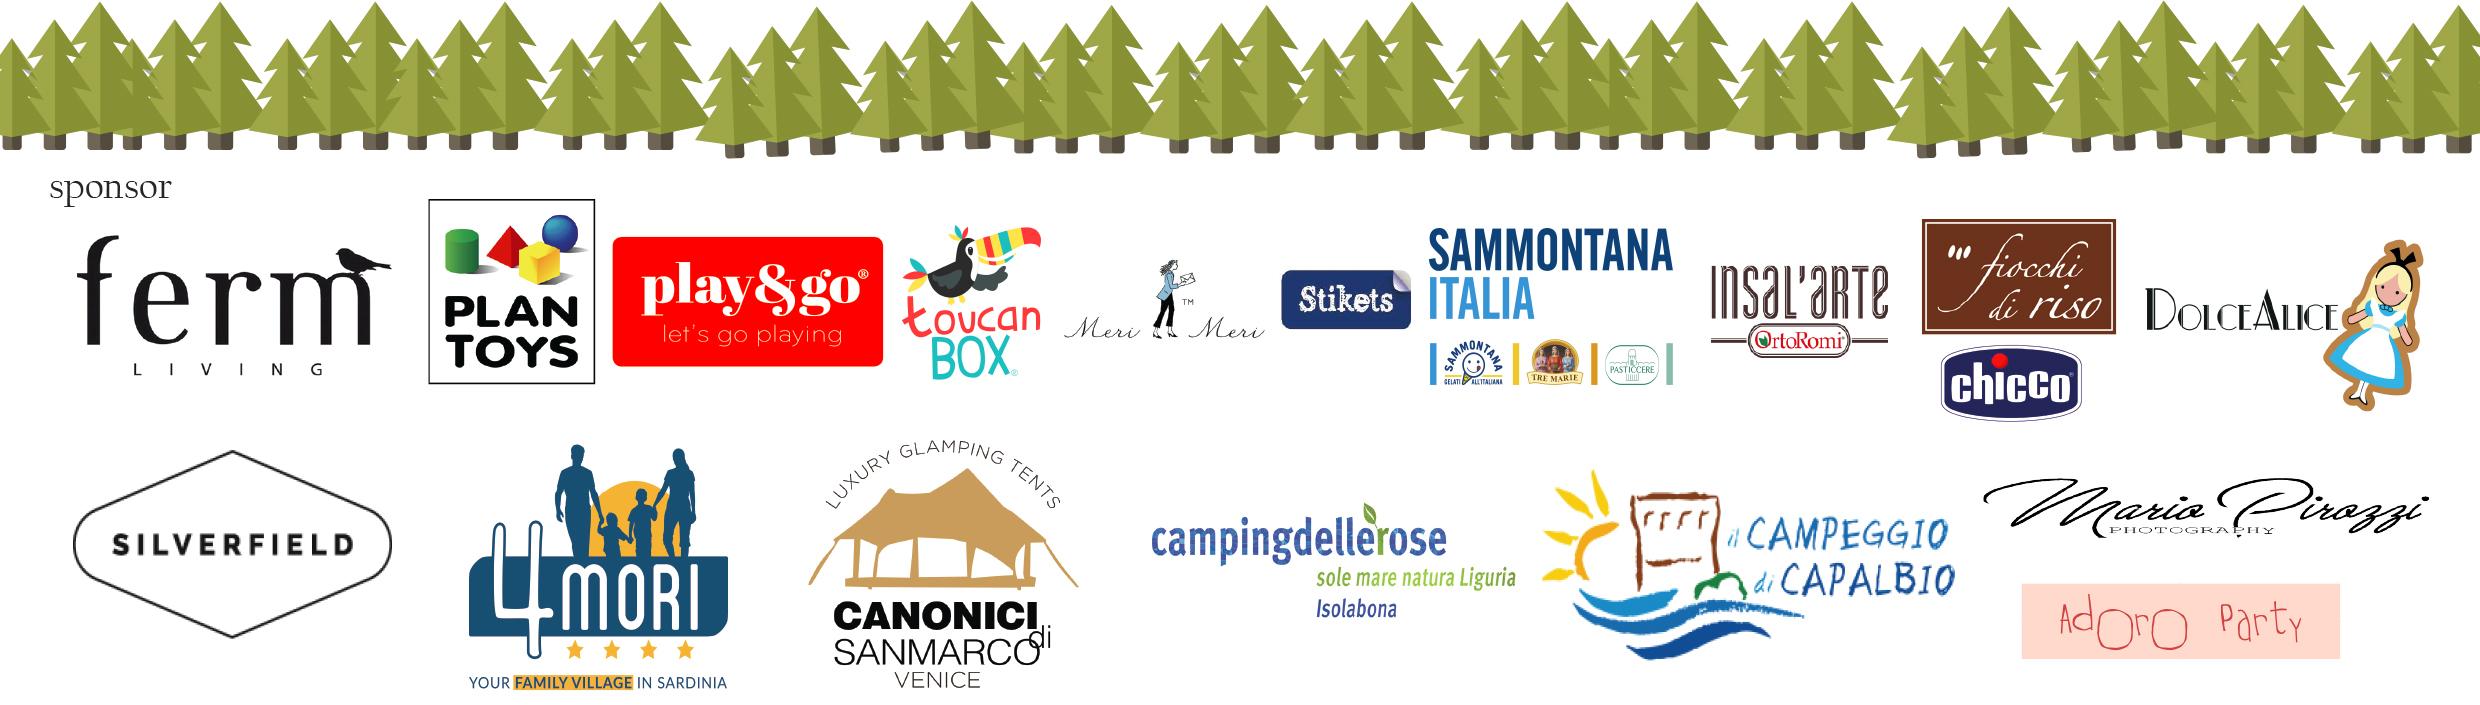 SPONSOR glamping party